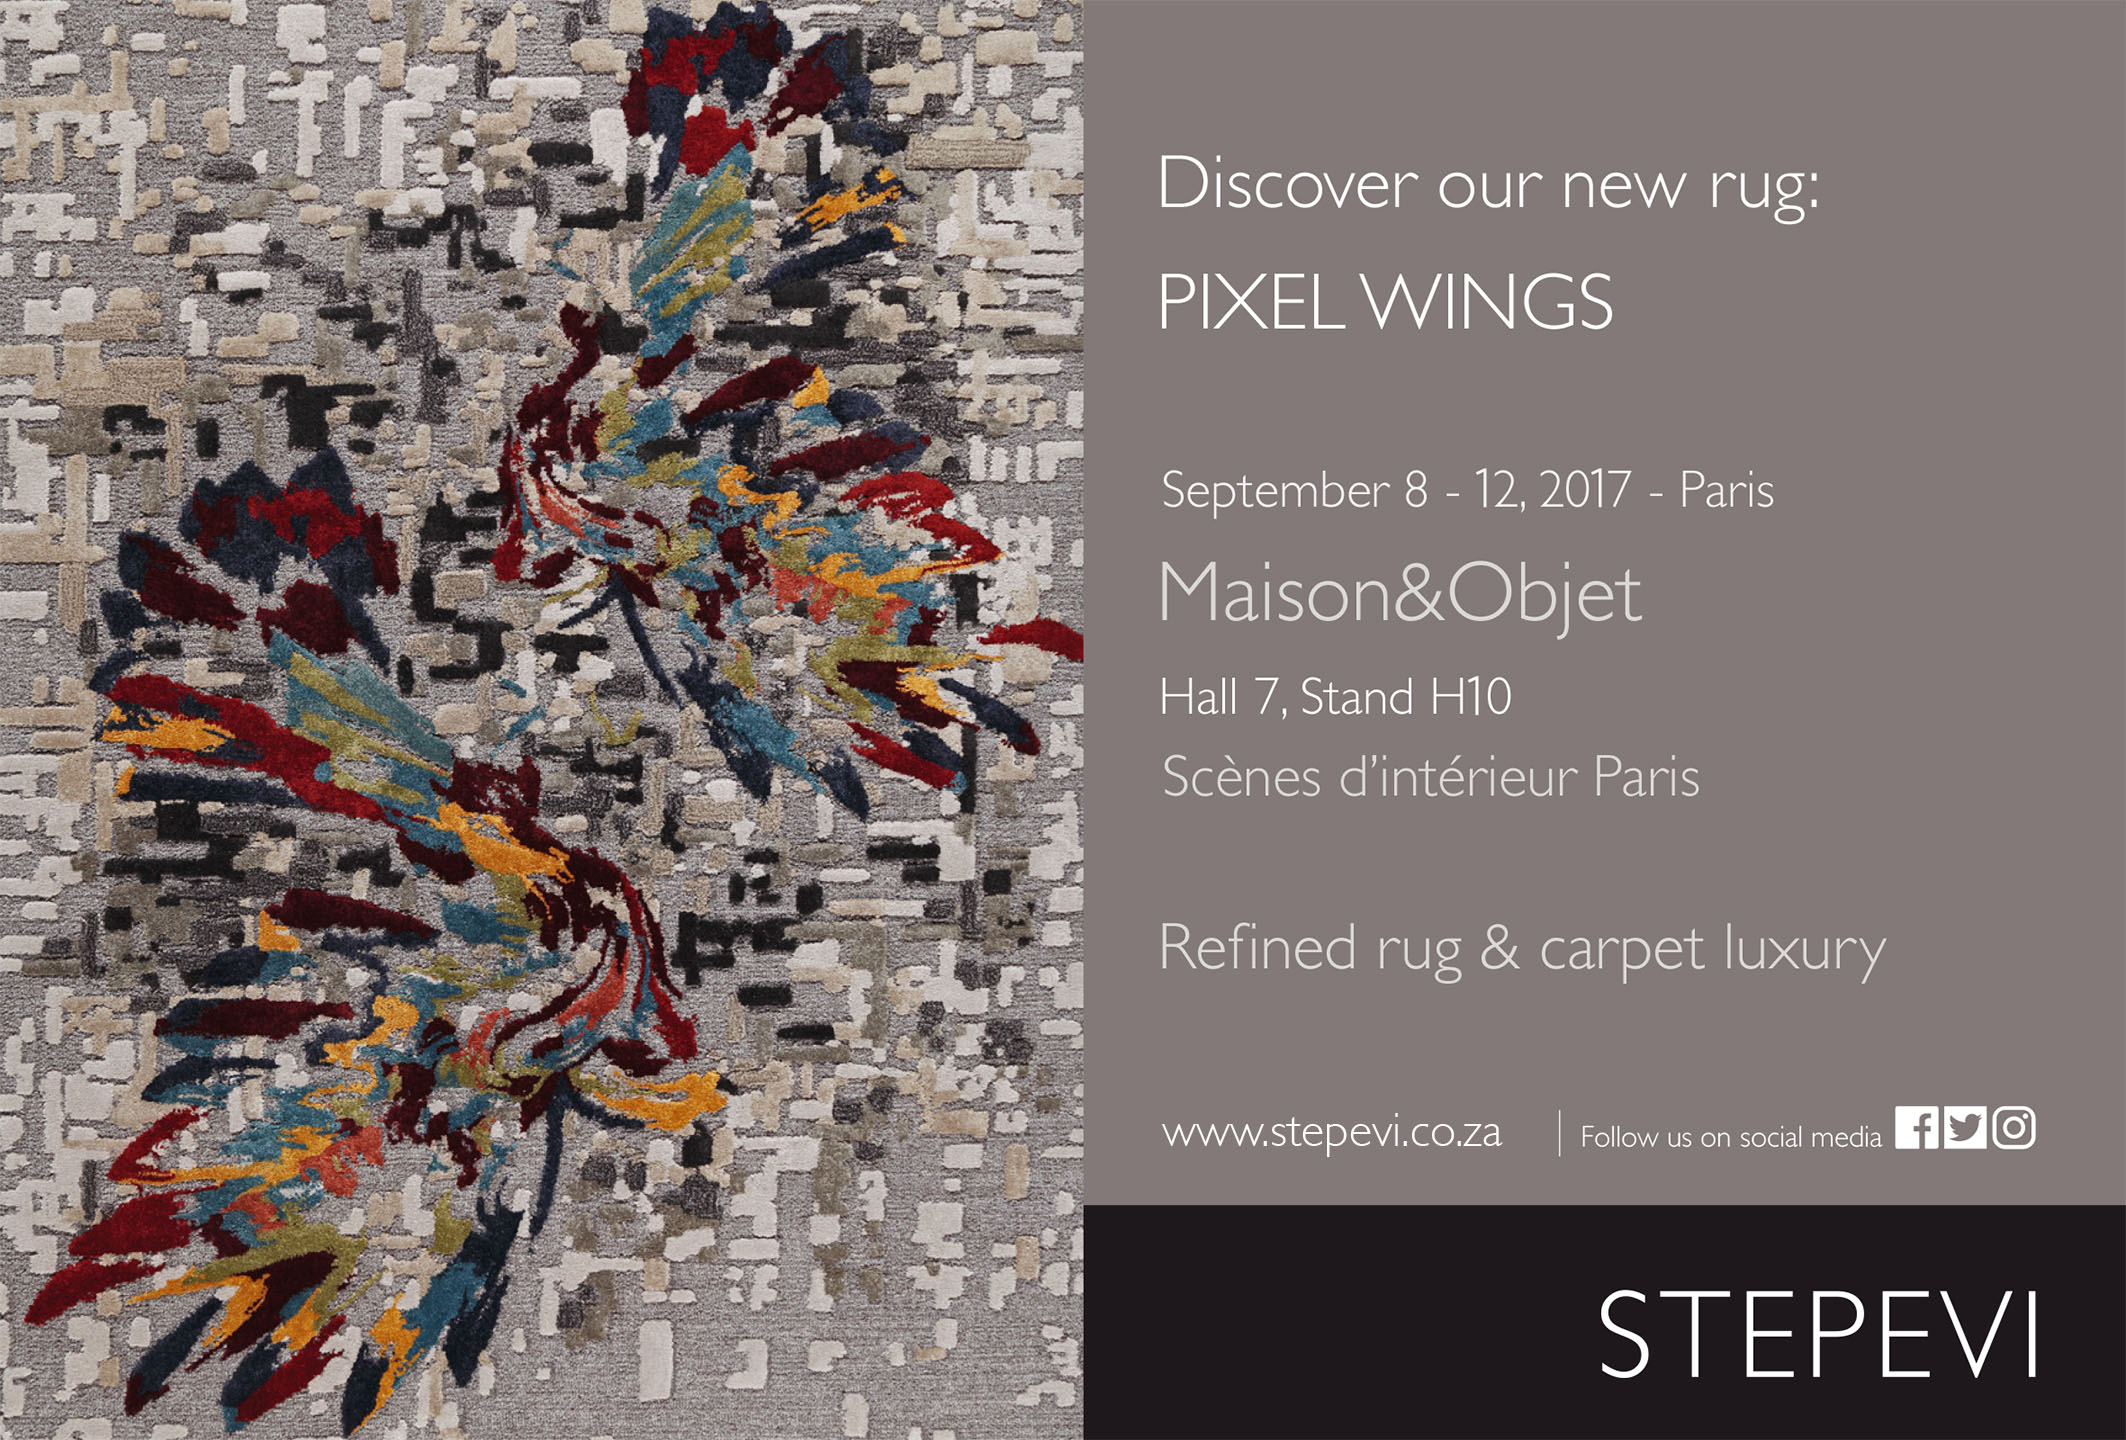 Launching at Maison & Objet, Paris this